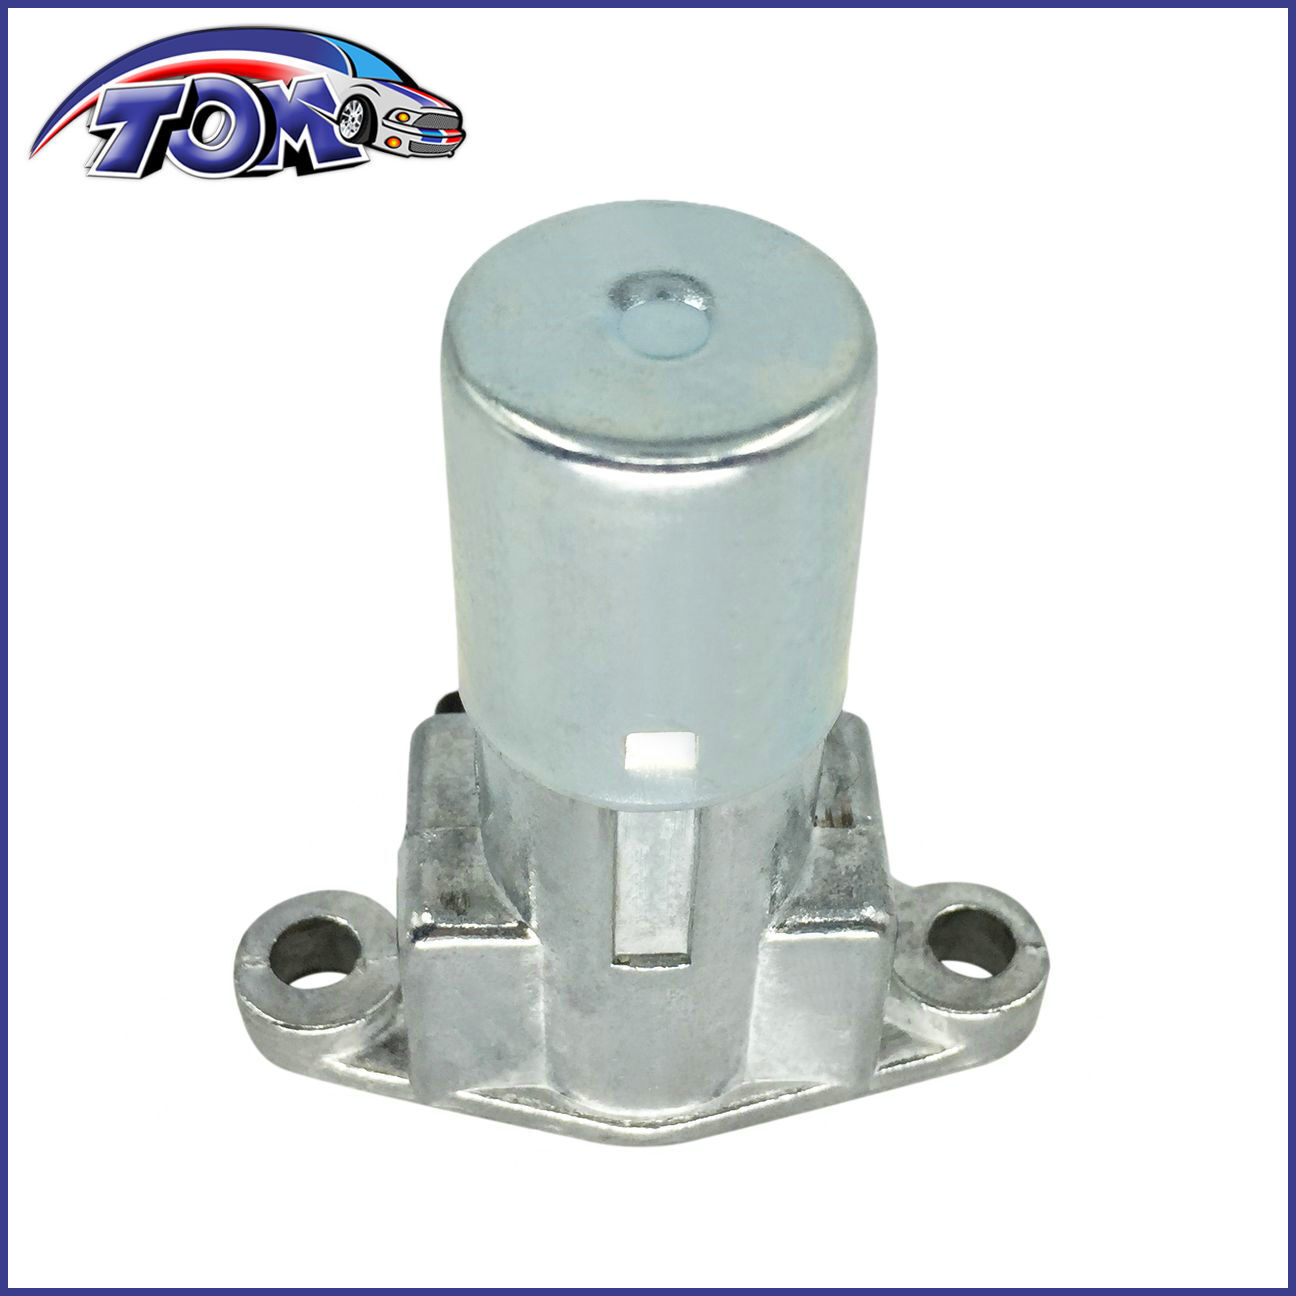 hight resolution of brand new headlight dimmer switch fits ford 94 bronco f 150 f 250 e 350